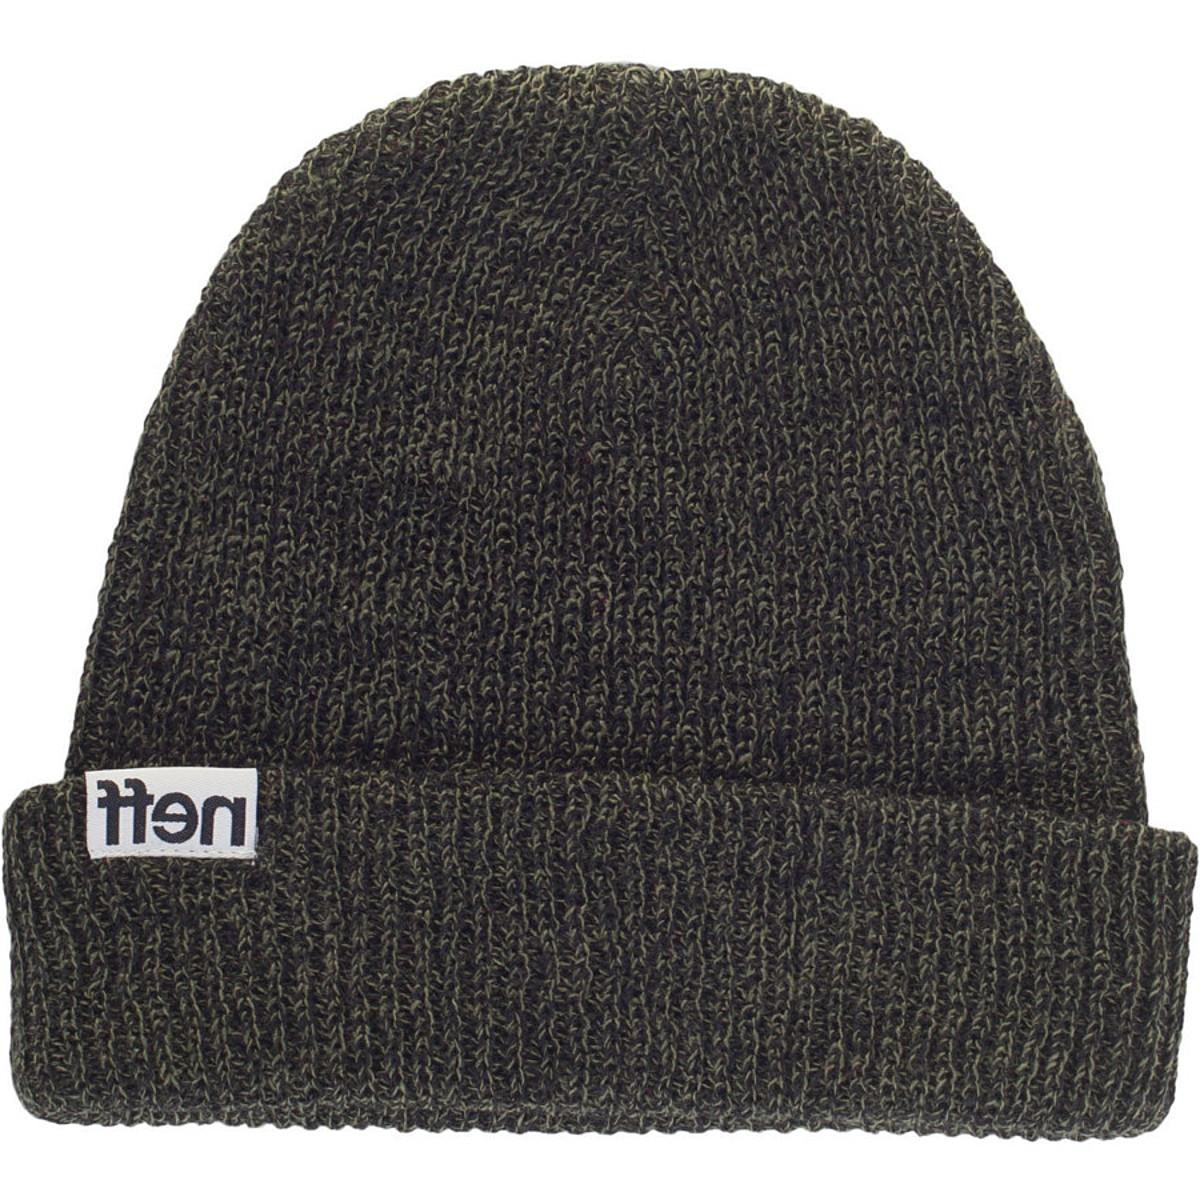 Neff Fold Heather Beanie Black/Olive, One Size